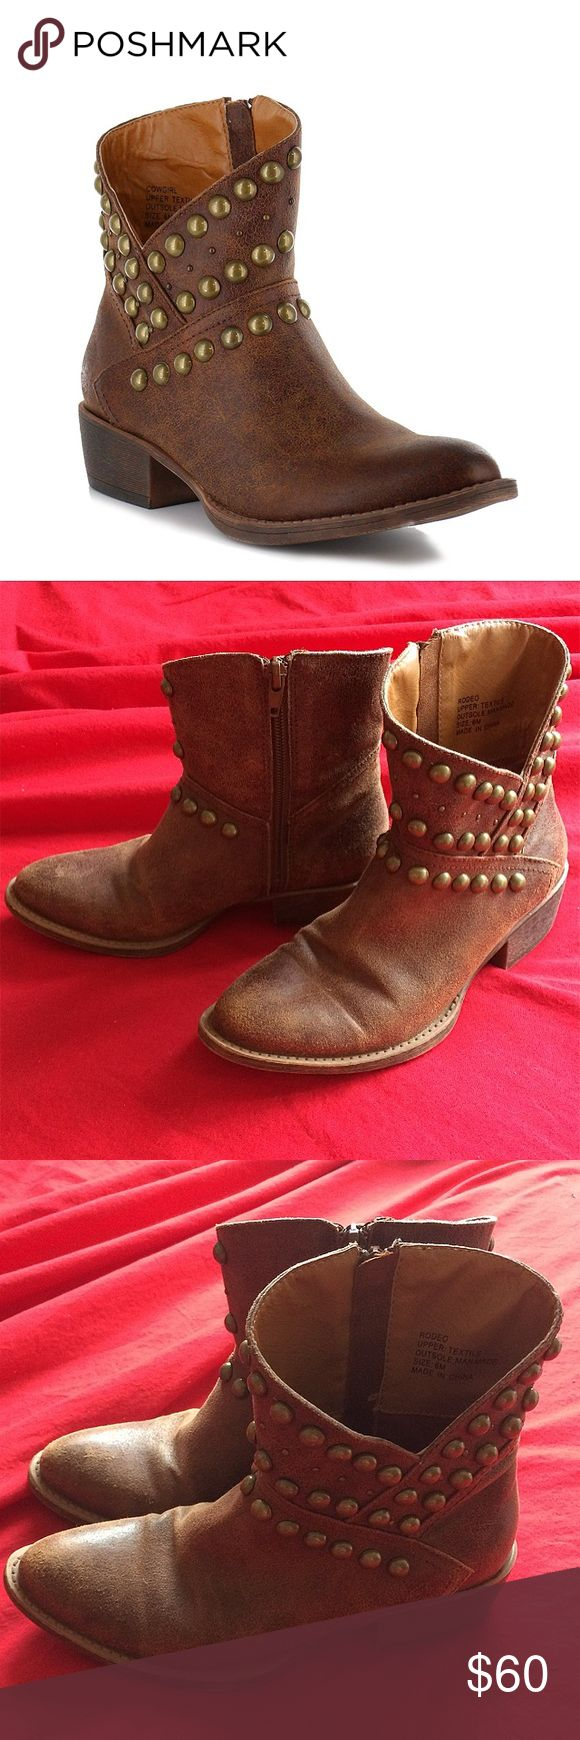 """Coconuts by Matisse Rodeo Cowgirl Booties Brand: Coconuts by Matisse Footwear - """"Rodeo""""  Size: 6 (width: M)  Color/material: tan, man-made leather (vegan), distressed style  Condition: Brand New! Worn once; no signs of wear - ready to be broken in ❤ Stylish boots pair perfectly with dresses, skirts, shorts, and skinny jeans to show off your country side with class 😘💎 🍾🐴👢 matisse Shoes Ankle Boots & Booties"""